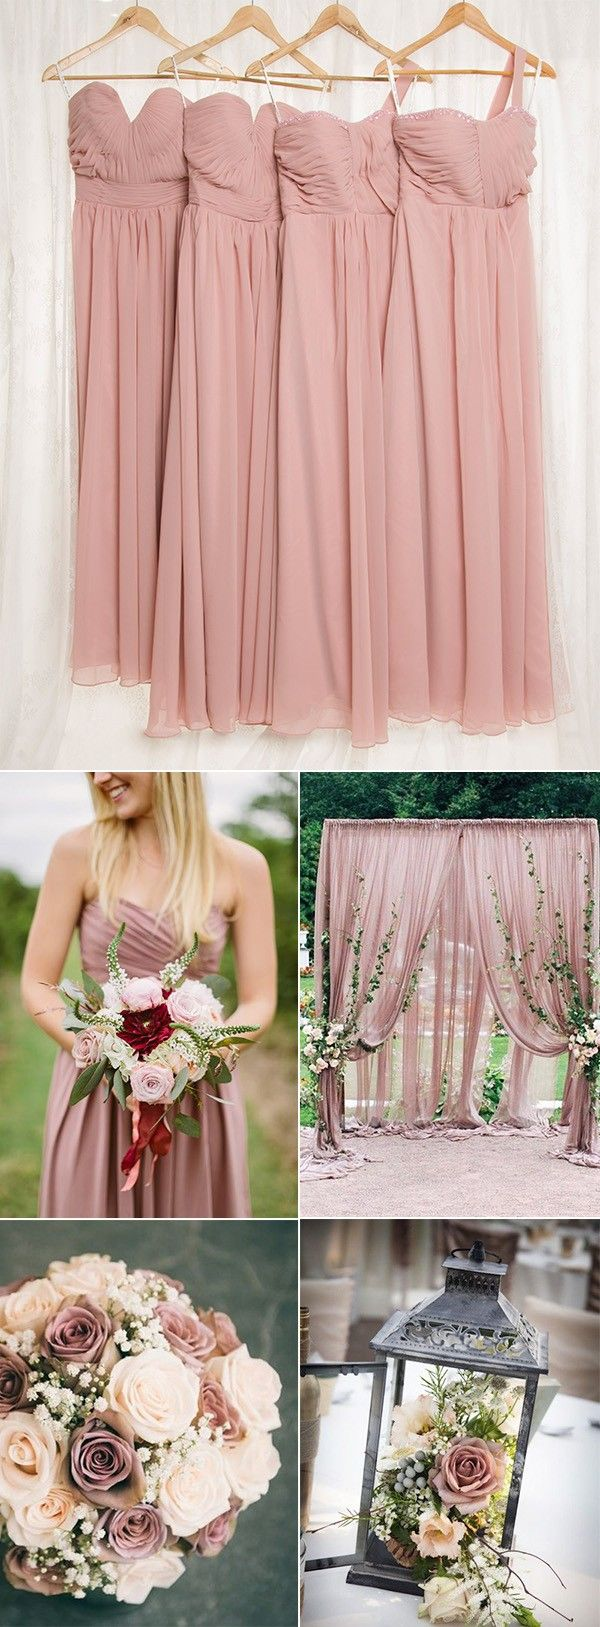 best the one in white images on pinterest wedding ideas